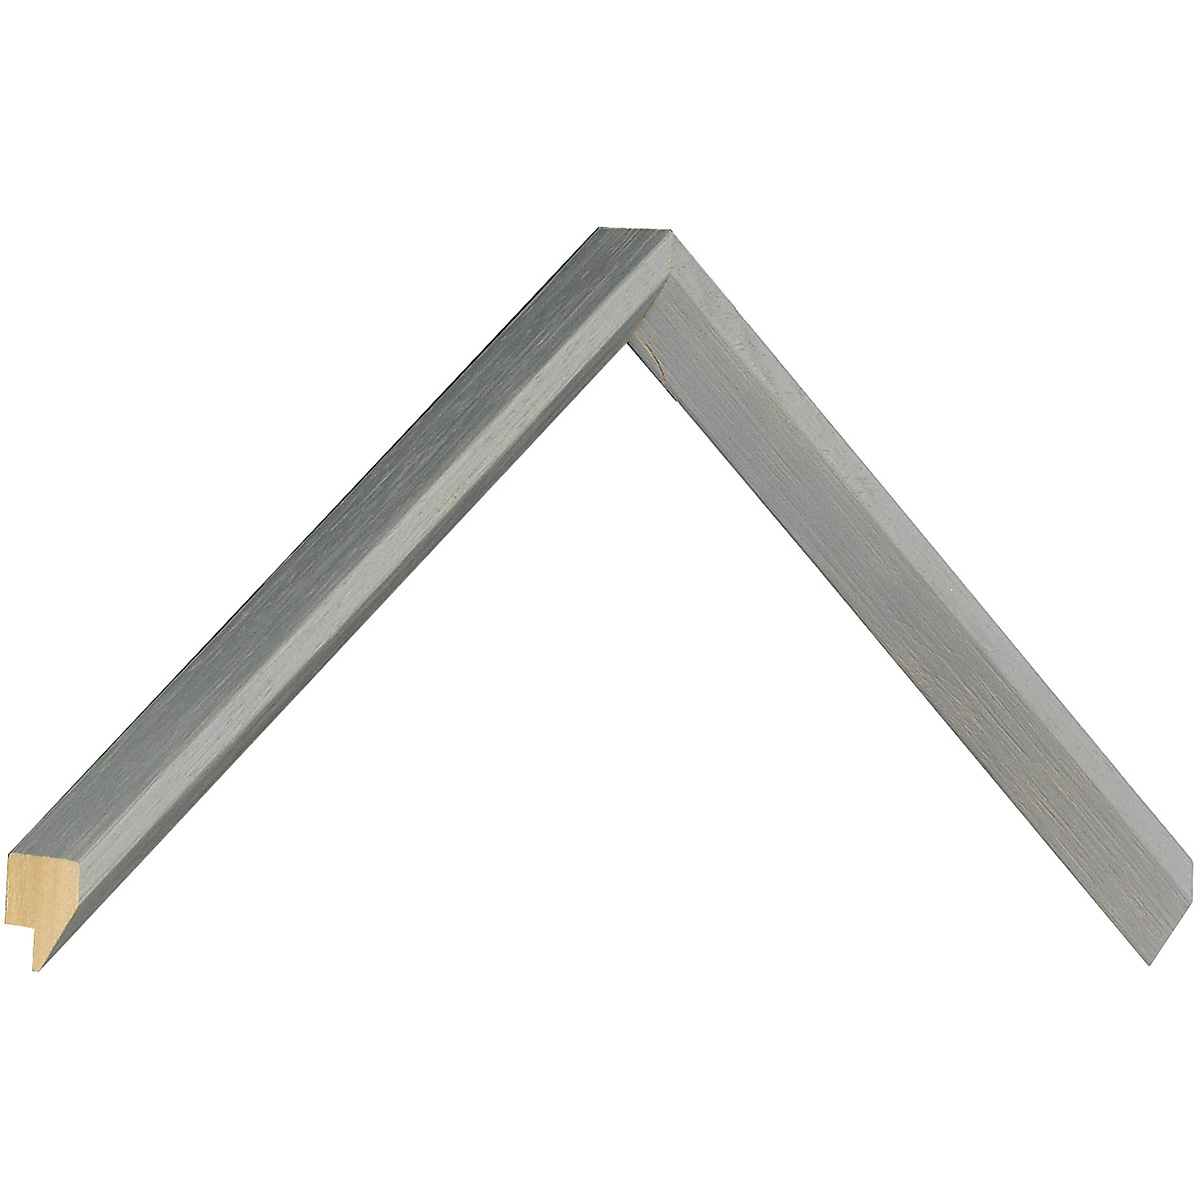 Moulding ayous 25mm height, 14mm width, light grey